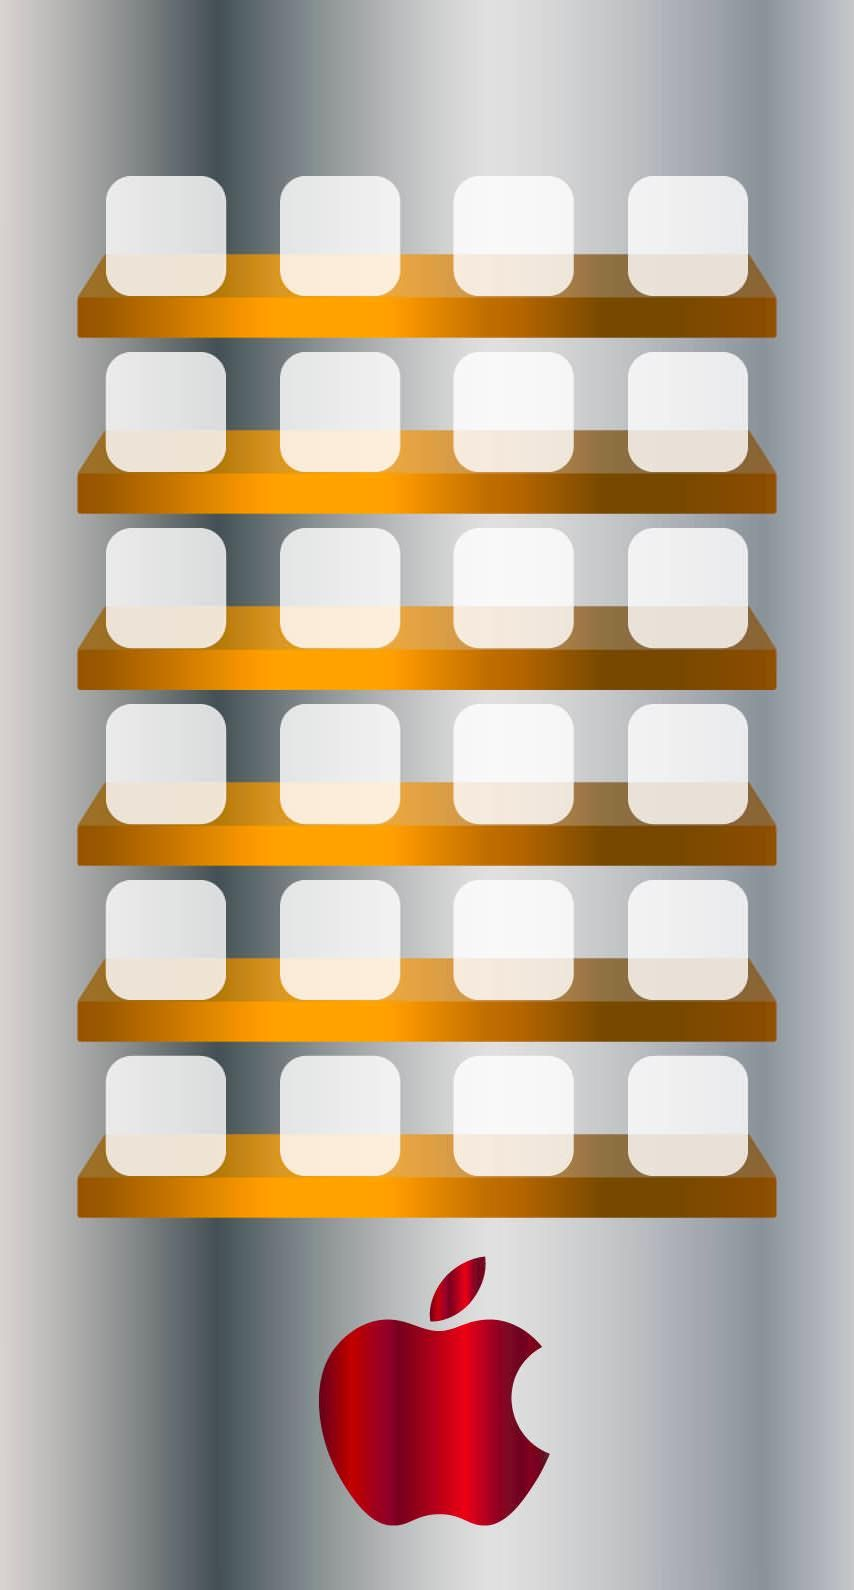 Apple Logo Shelf Cool Wallpaper Sc Iphone6s Apple Logo Wallpaper Iphone Wallpaper Shelves Apple Logo Wallpaper